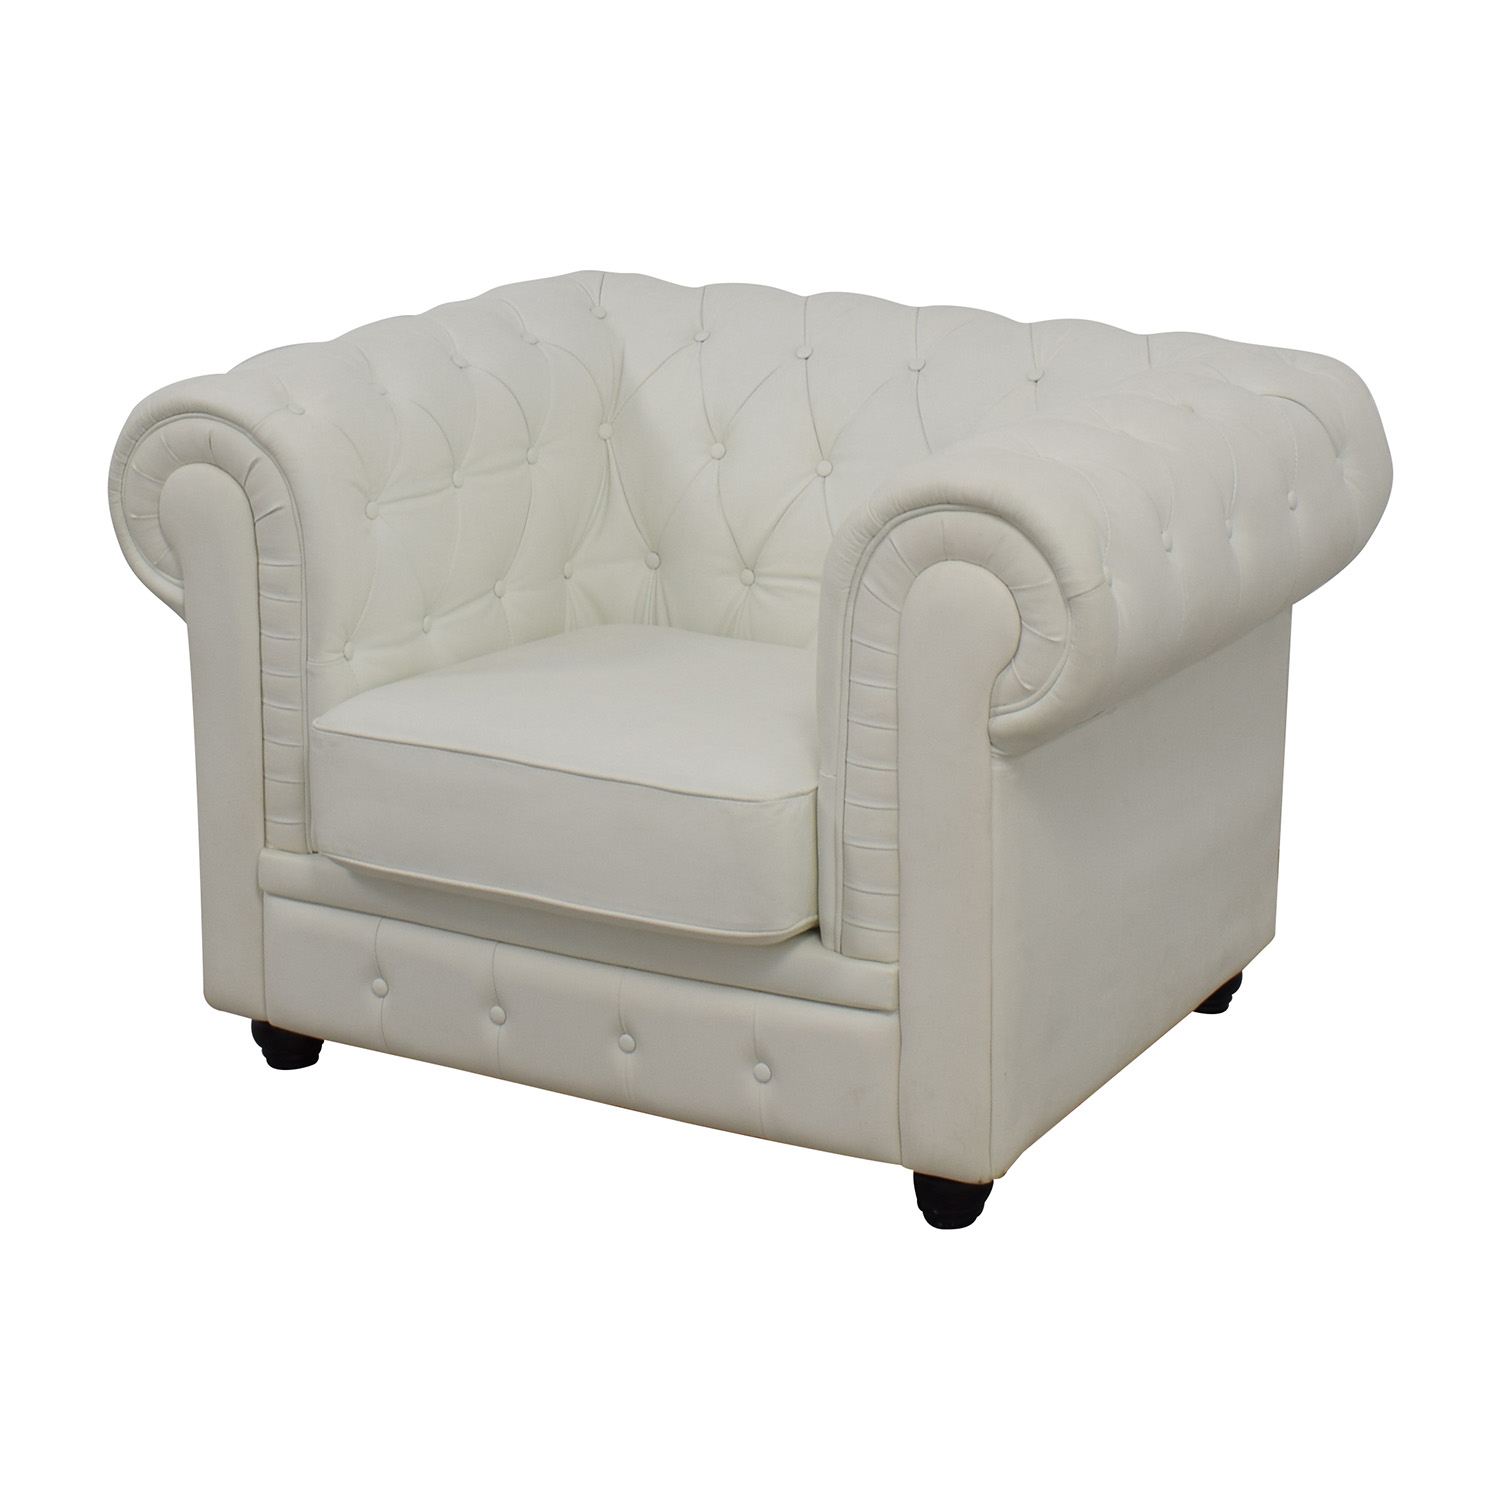 white tufted chairs wingback chair slipcovers 86 off chesterfield leather accent